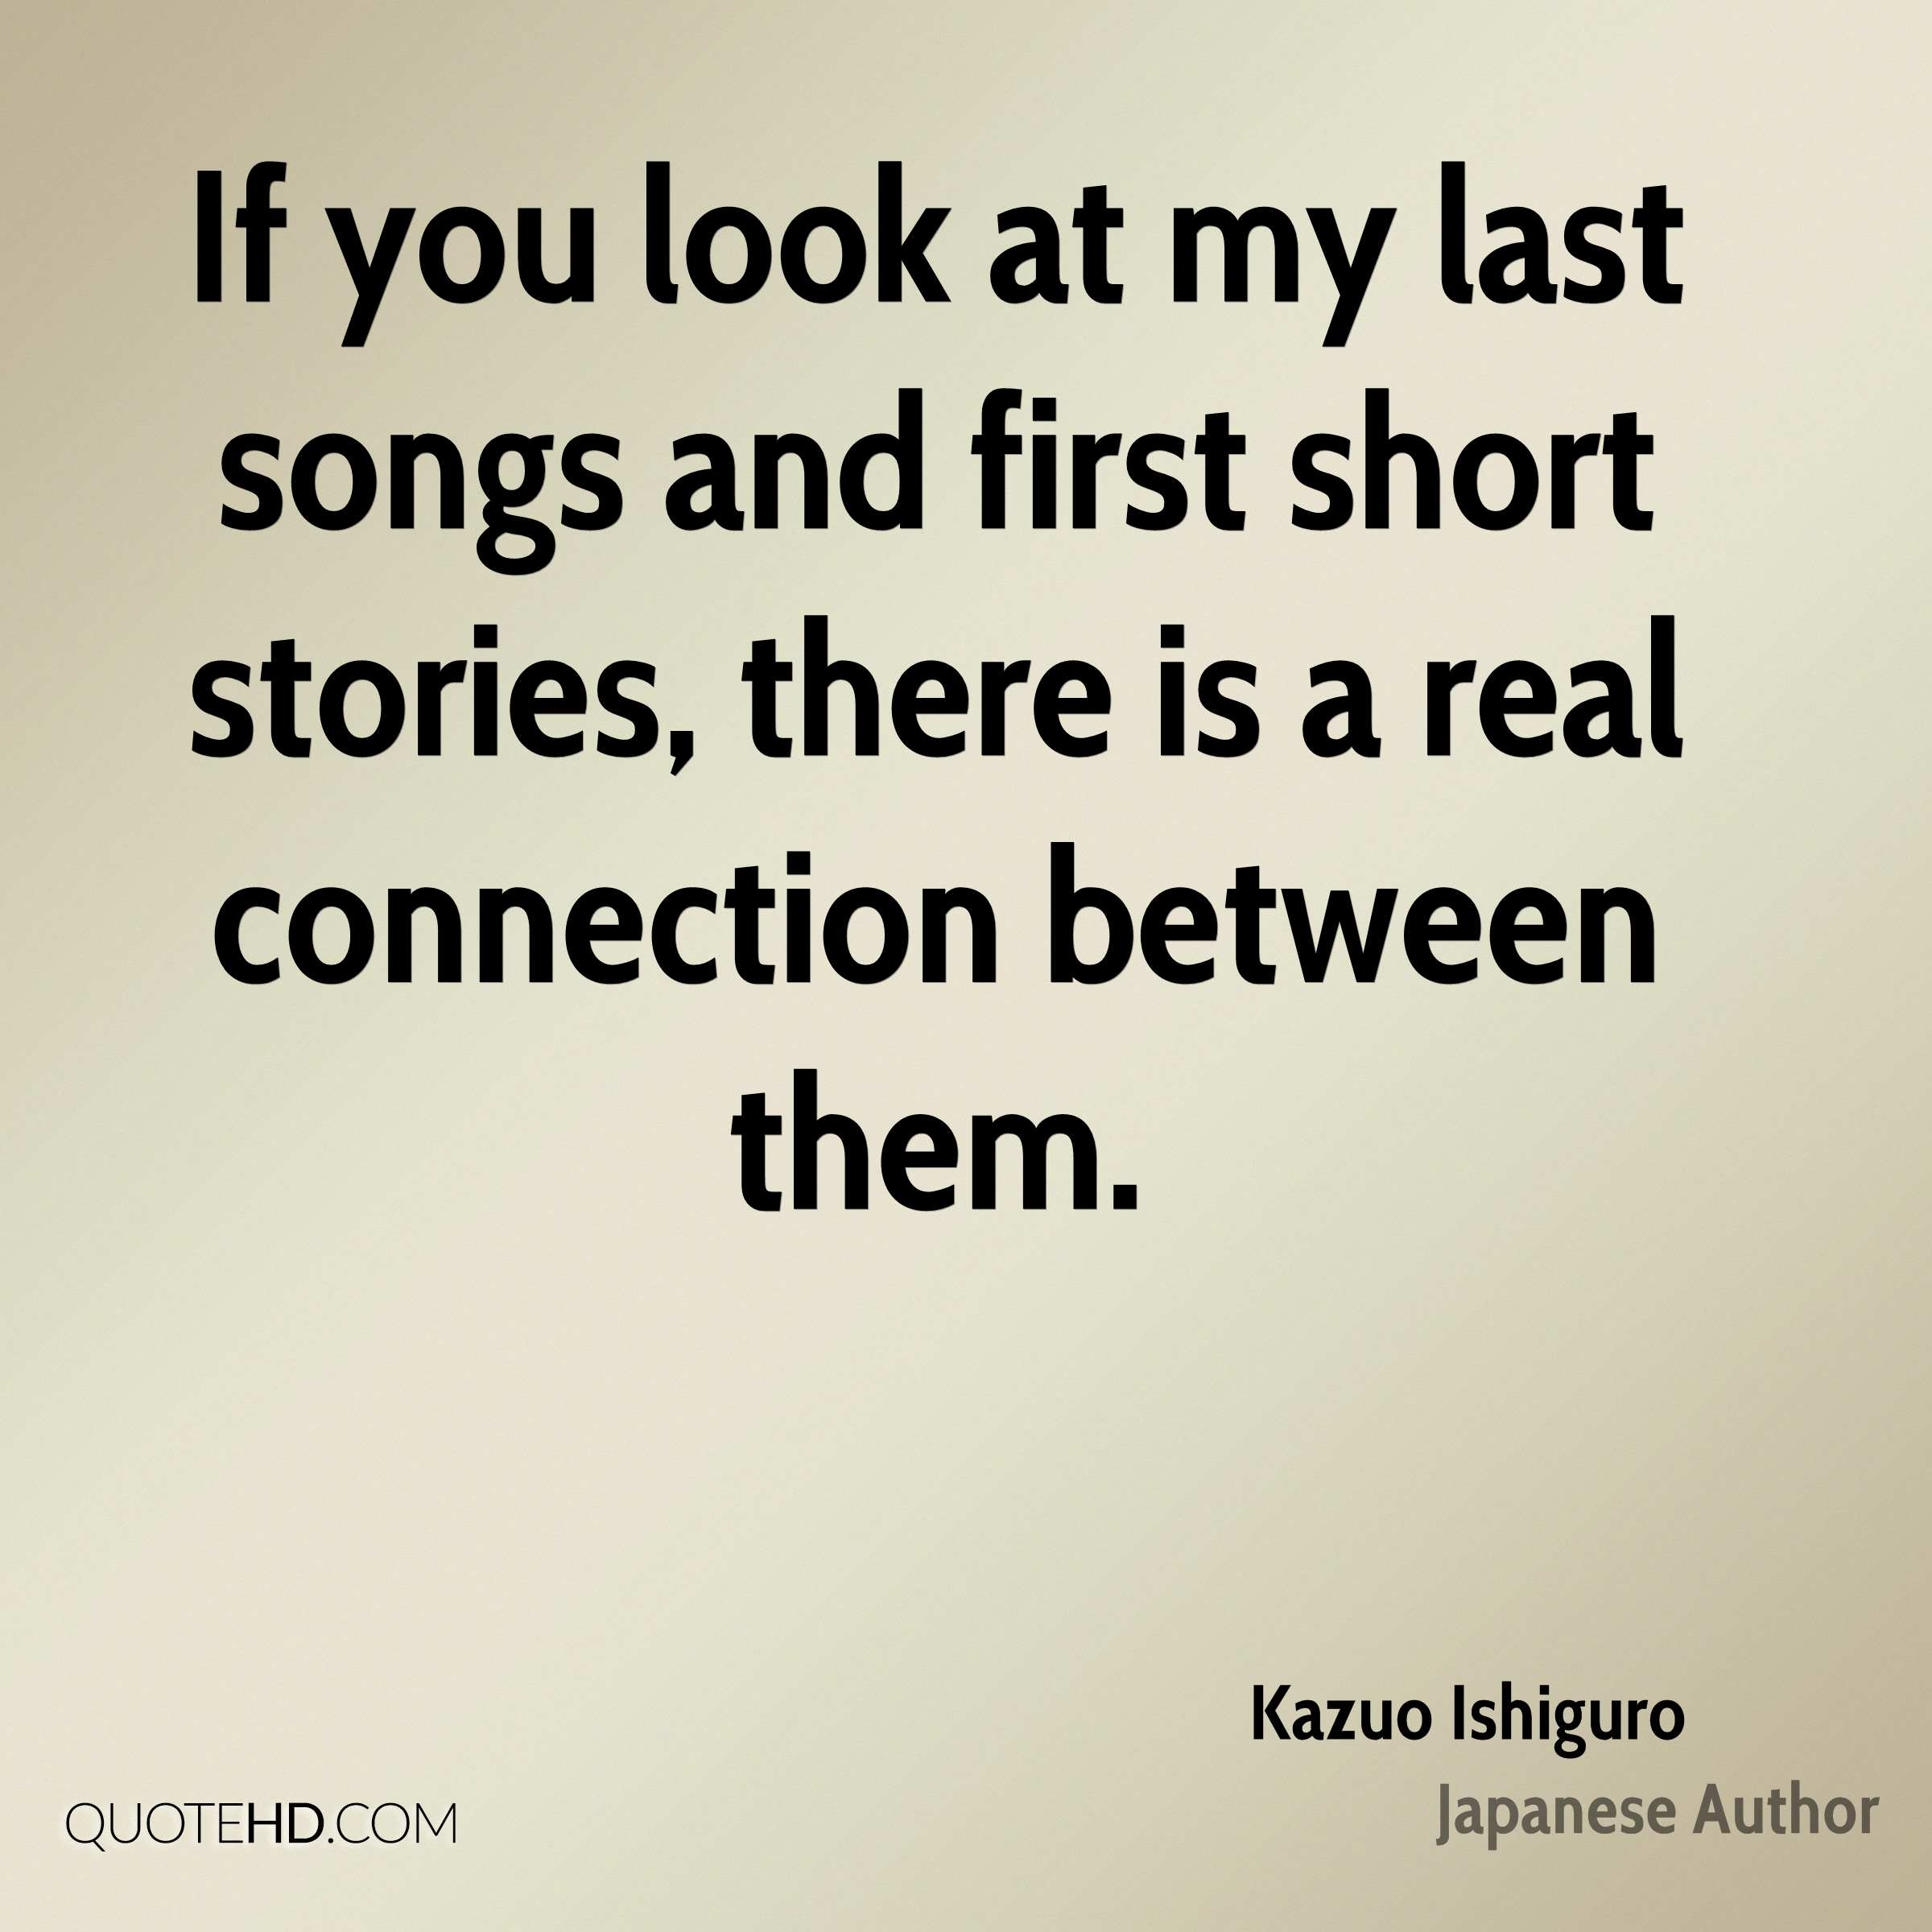 If you look at my last songs and first short stories, there is a real connection between them.